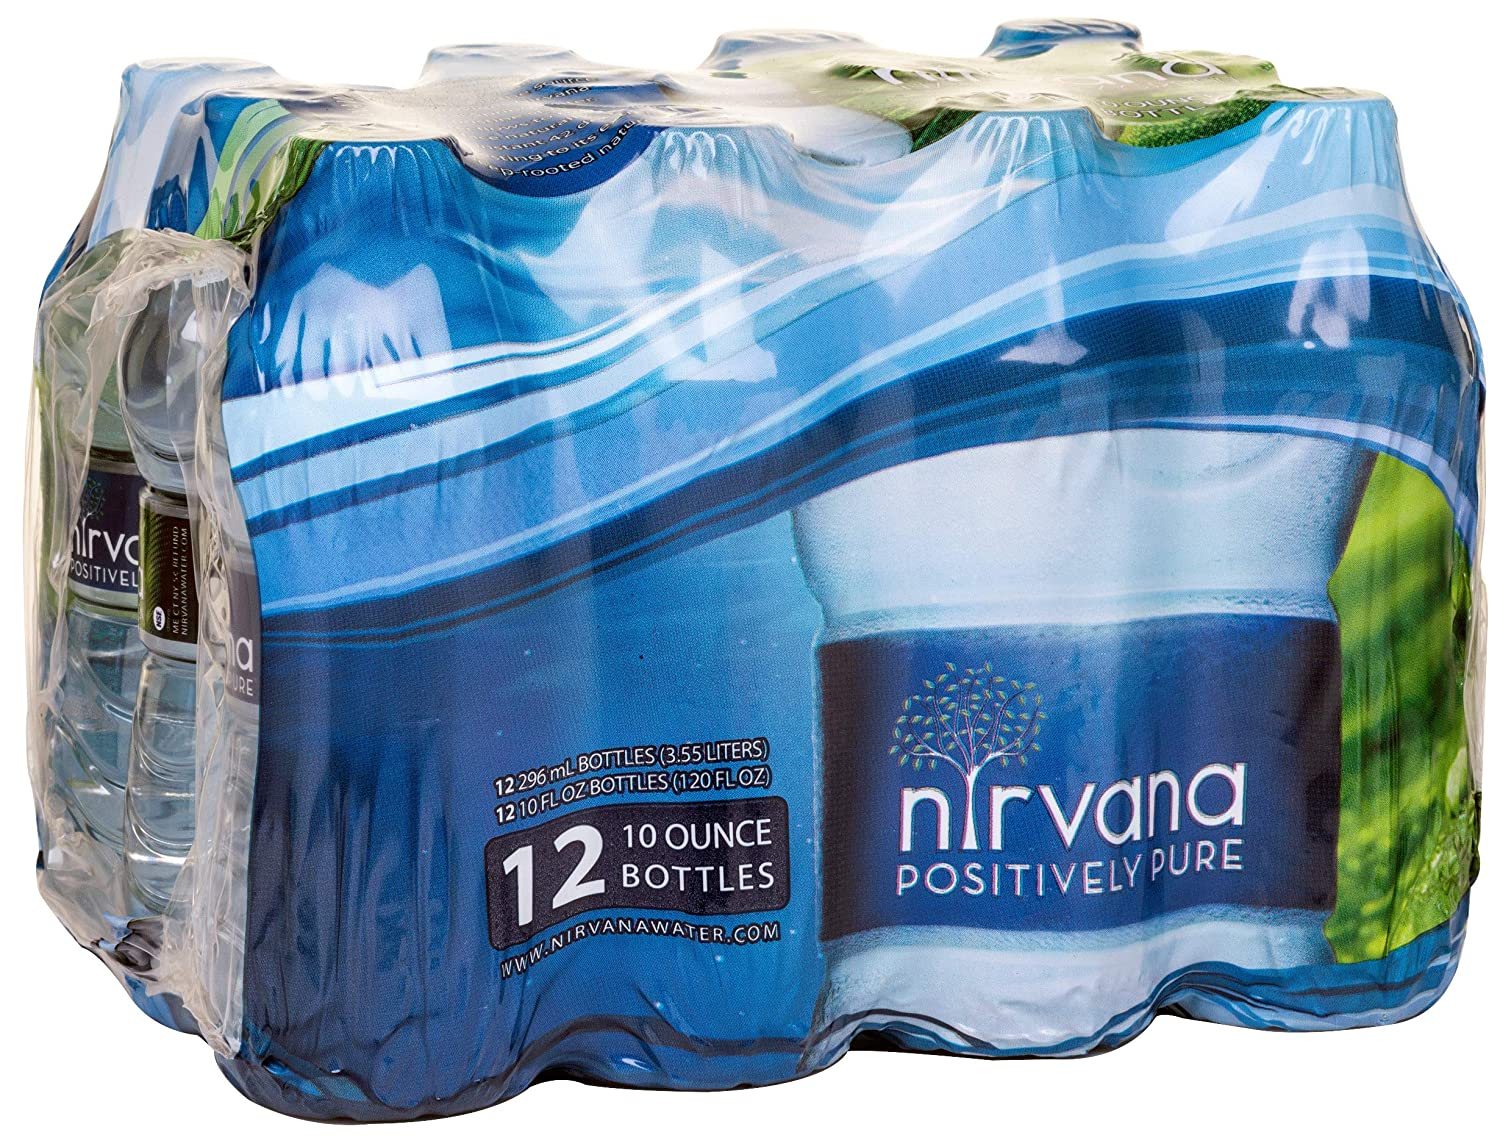 Nirvana Natural Spring Water 12-Pack of 10 oz. Direct store Bottles Be super welcome